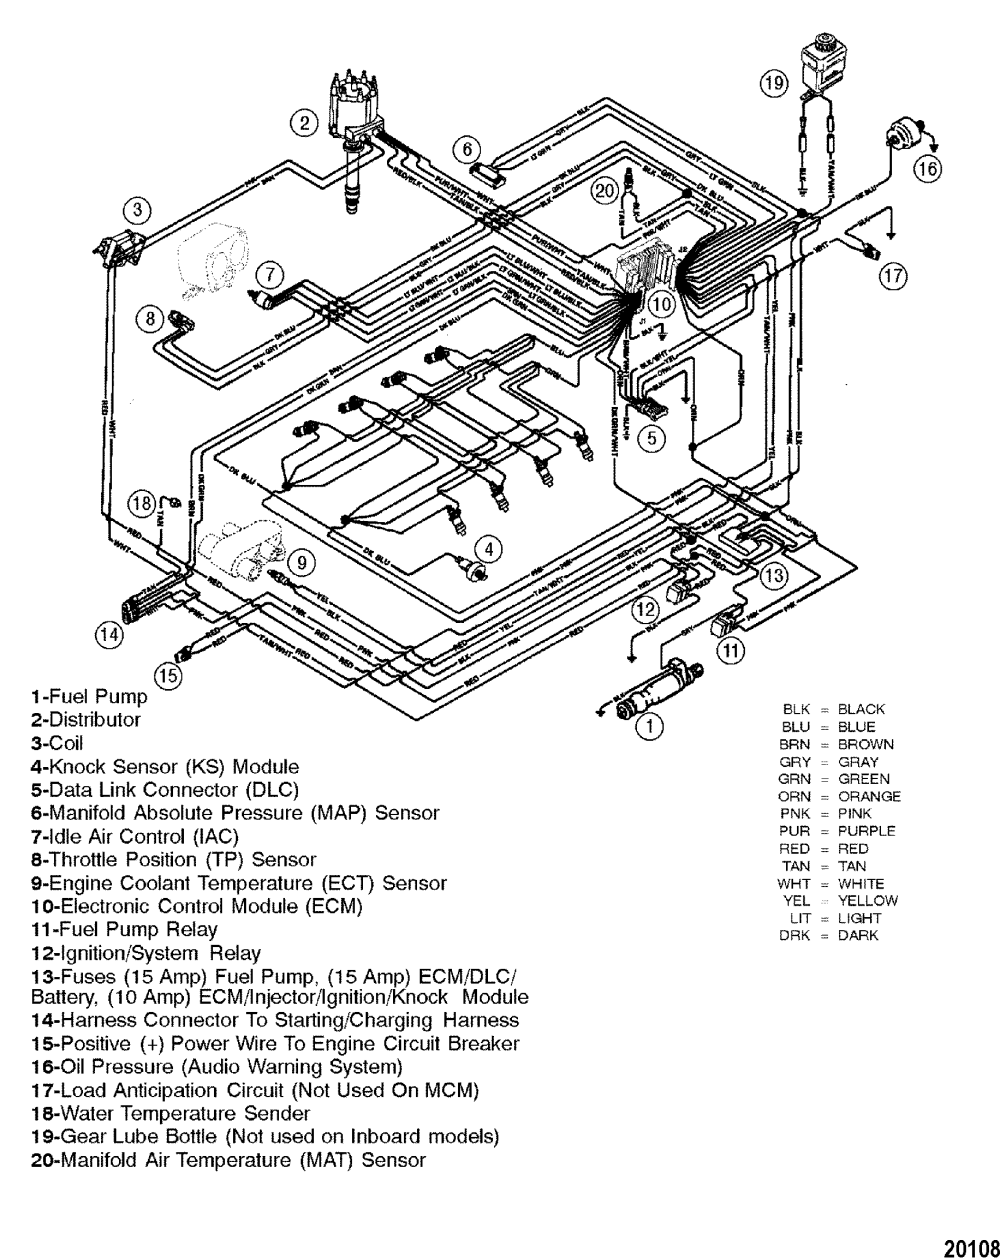 medium resolution of chevy 5 0 engine diagram good guide of wiring diagram u2022 rh getescorts pro 2003 8